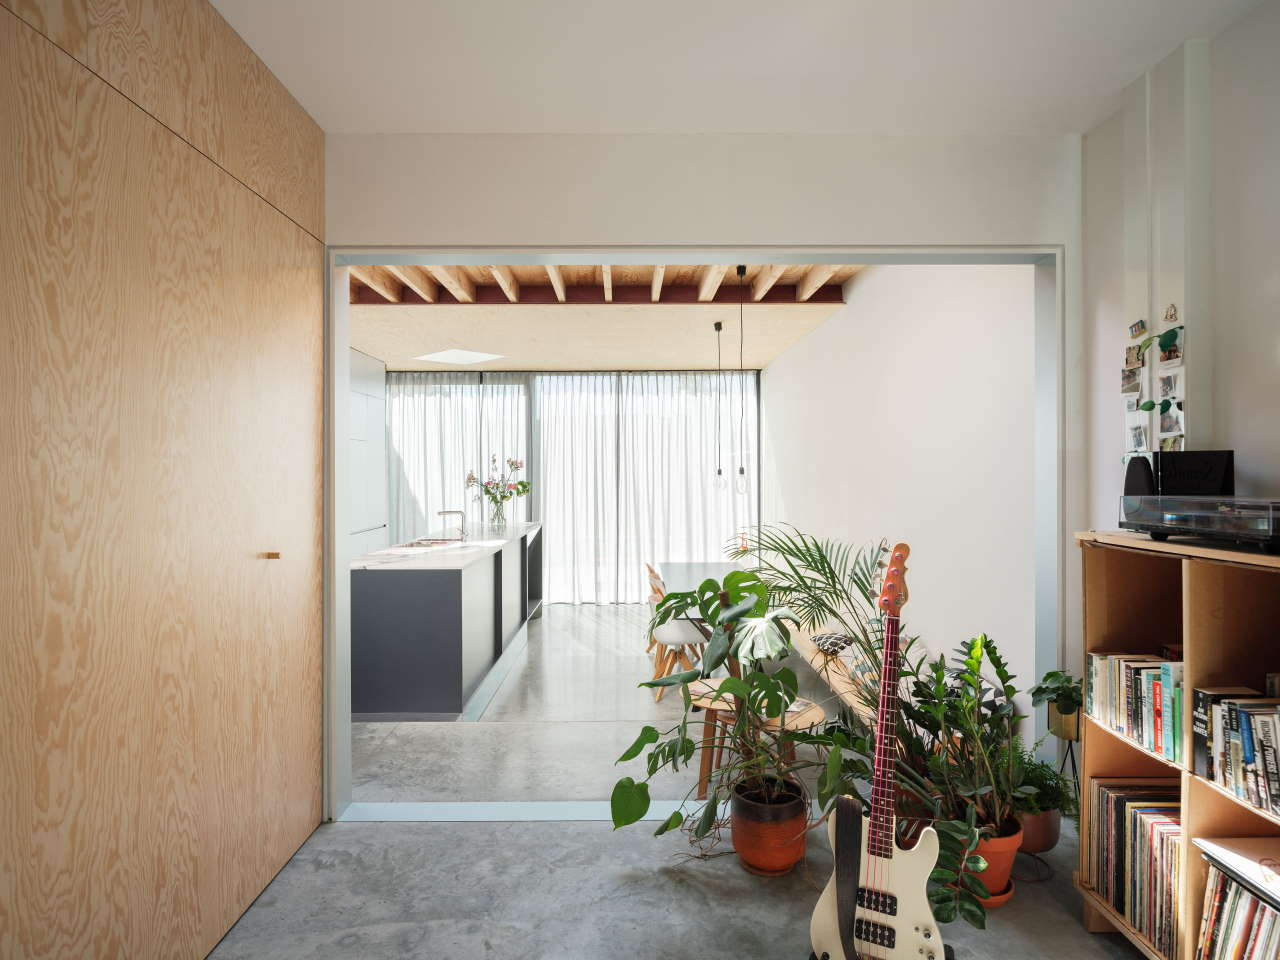 This contemporary home extension is a stylish dwelling located on a very small footprint and with a small depth